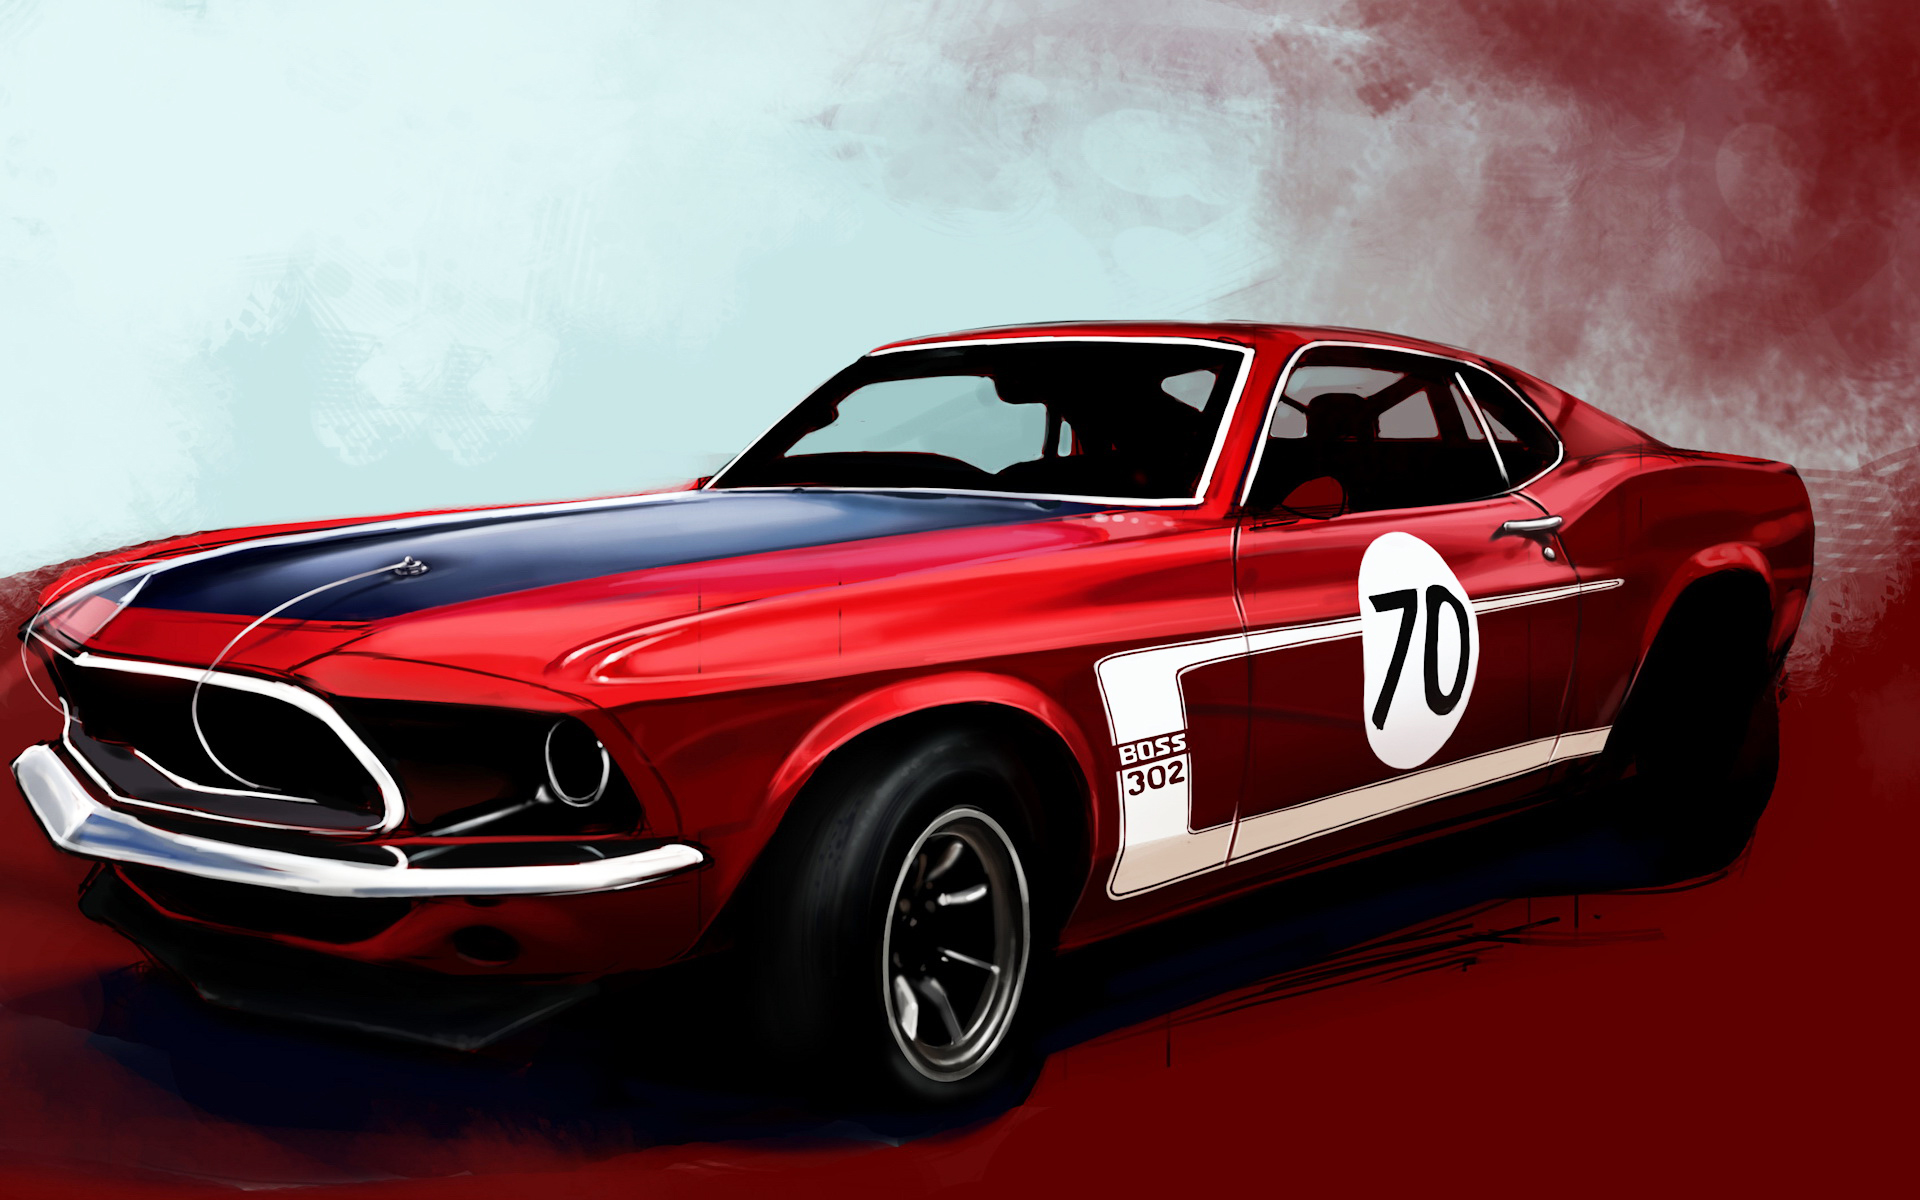 Drawn_wallpapers_Red_sports_car_013837_